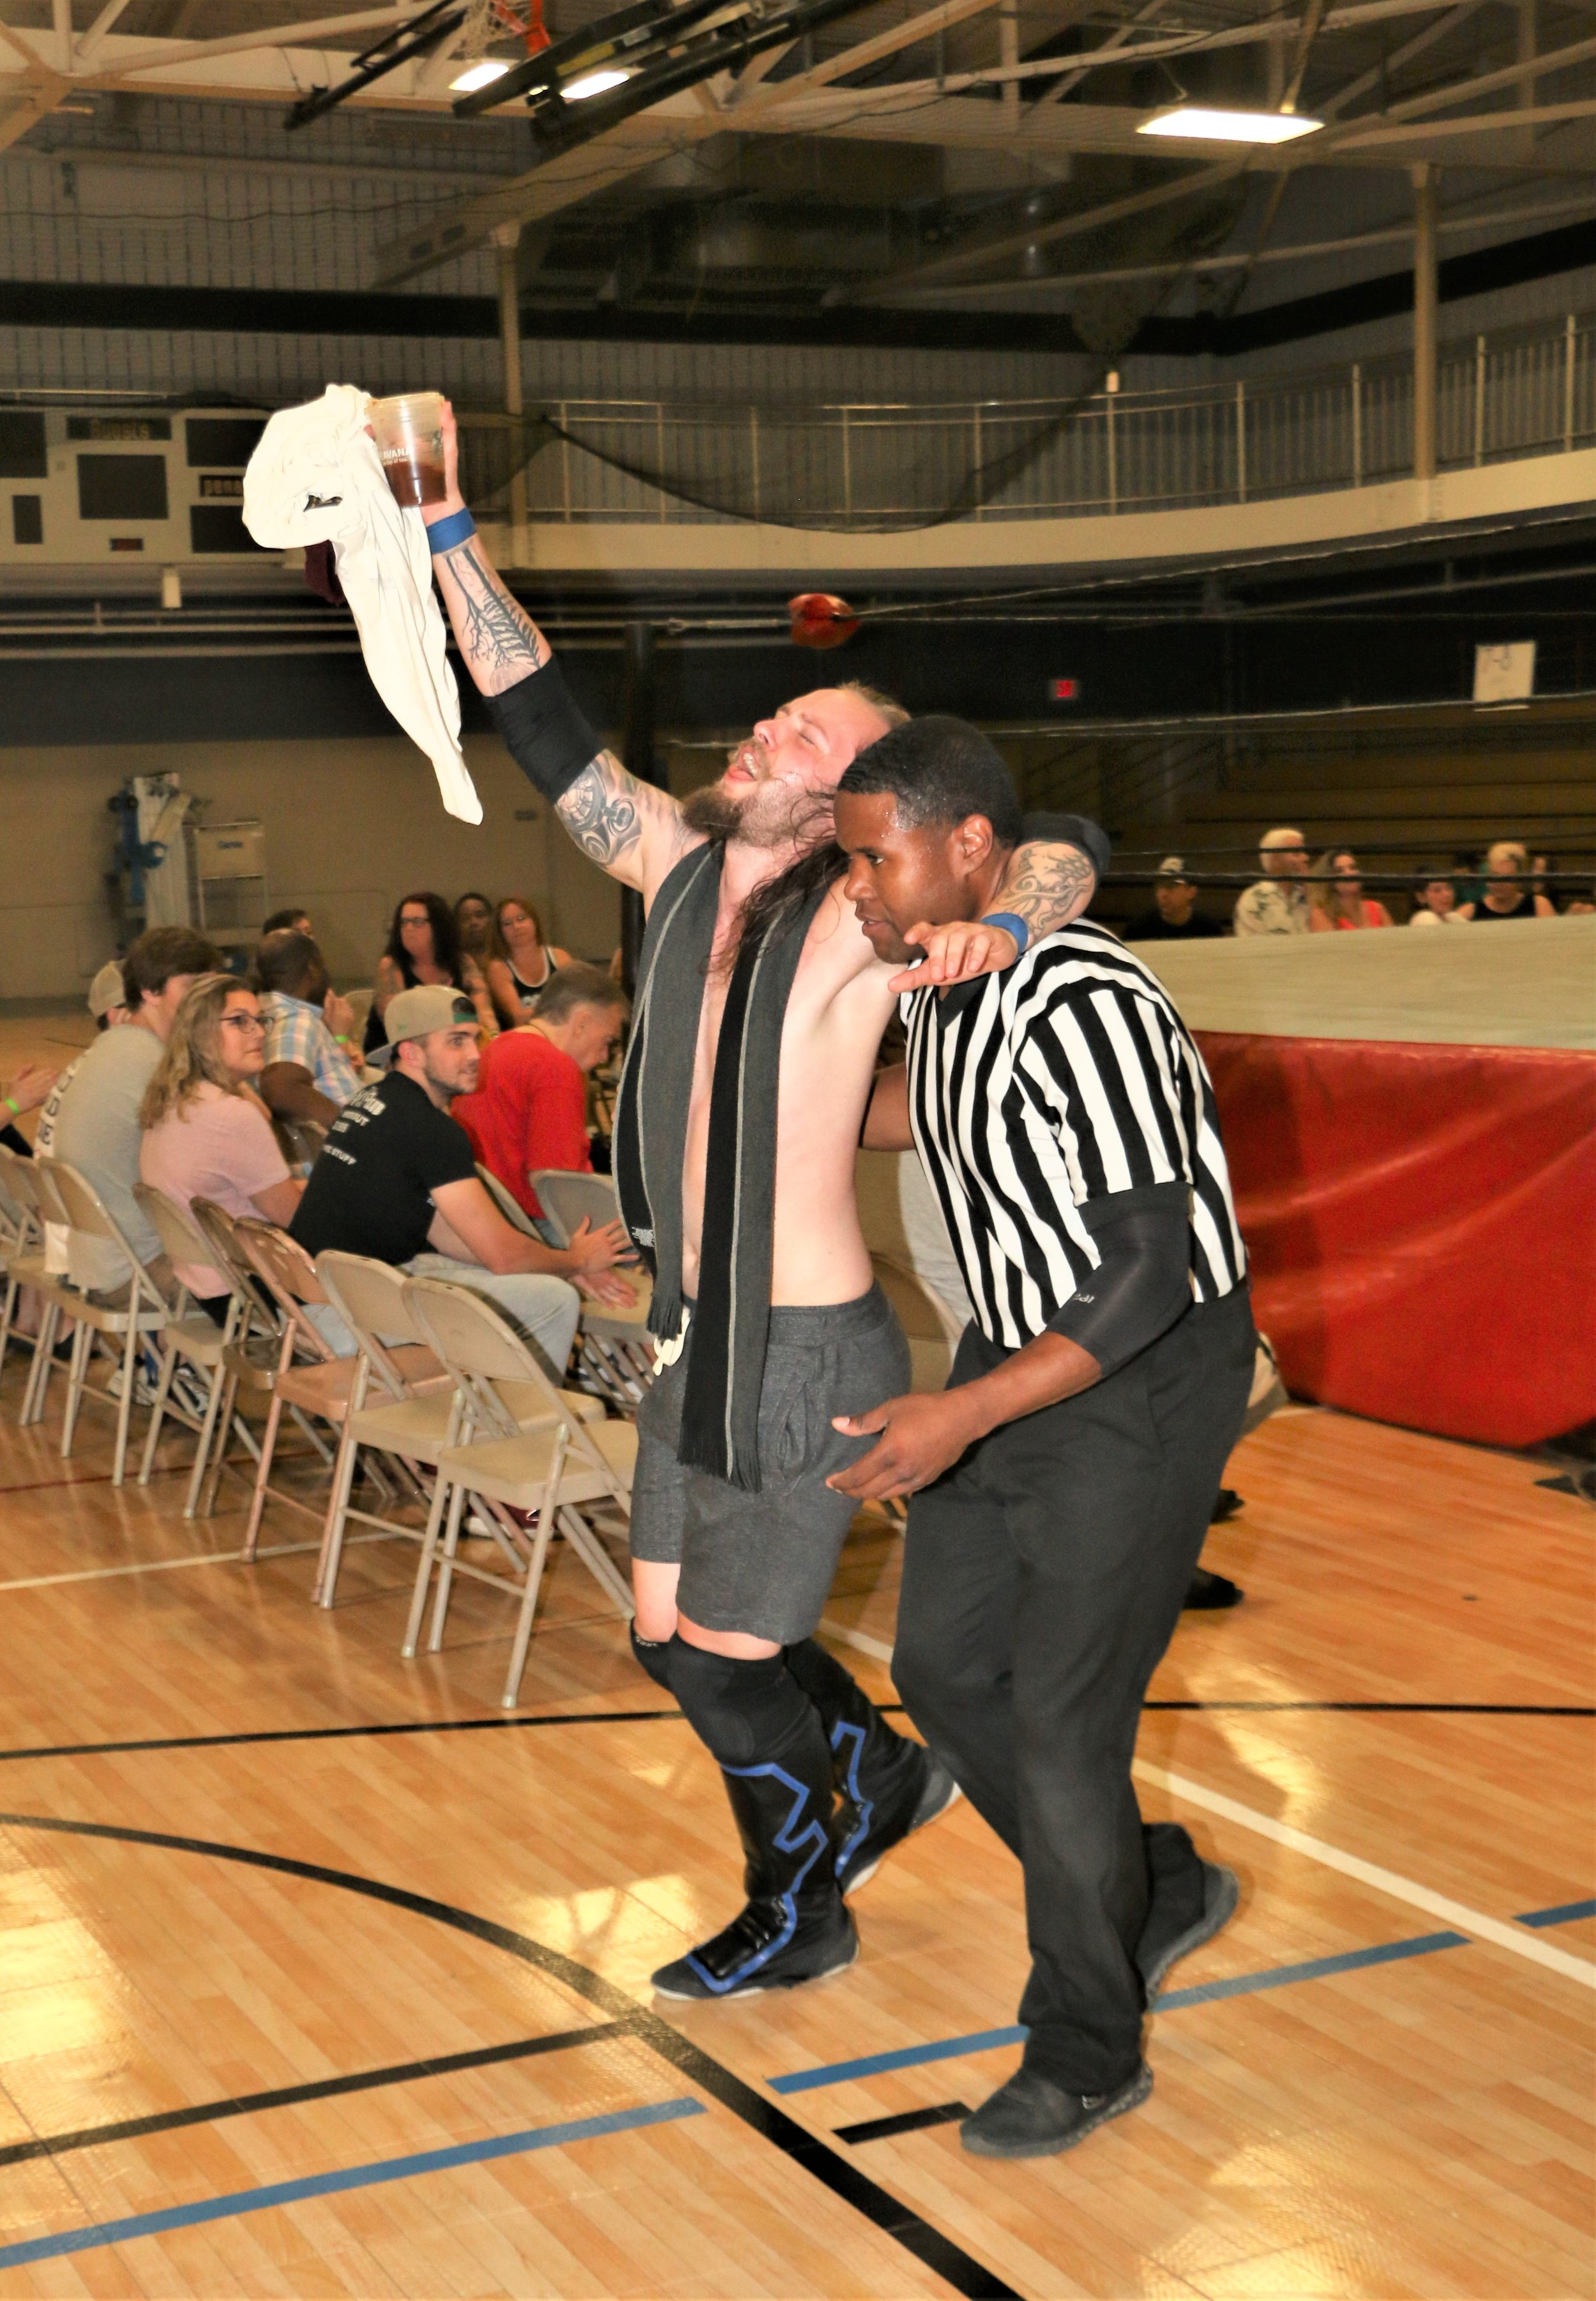 Referee Jessie Bush helps Aaron Arsenal out of the ring.